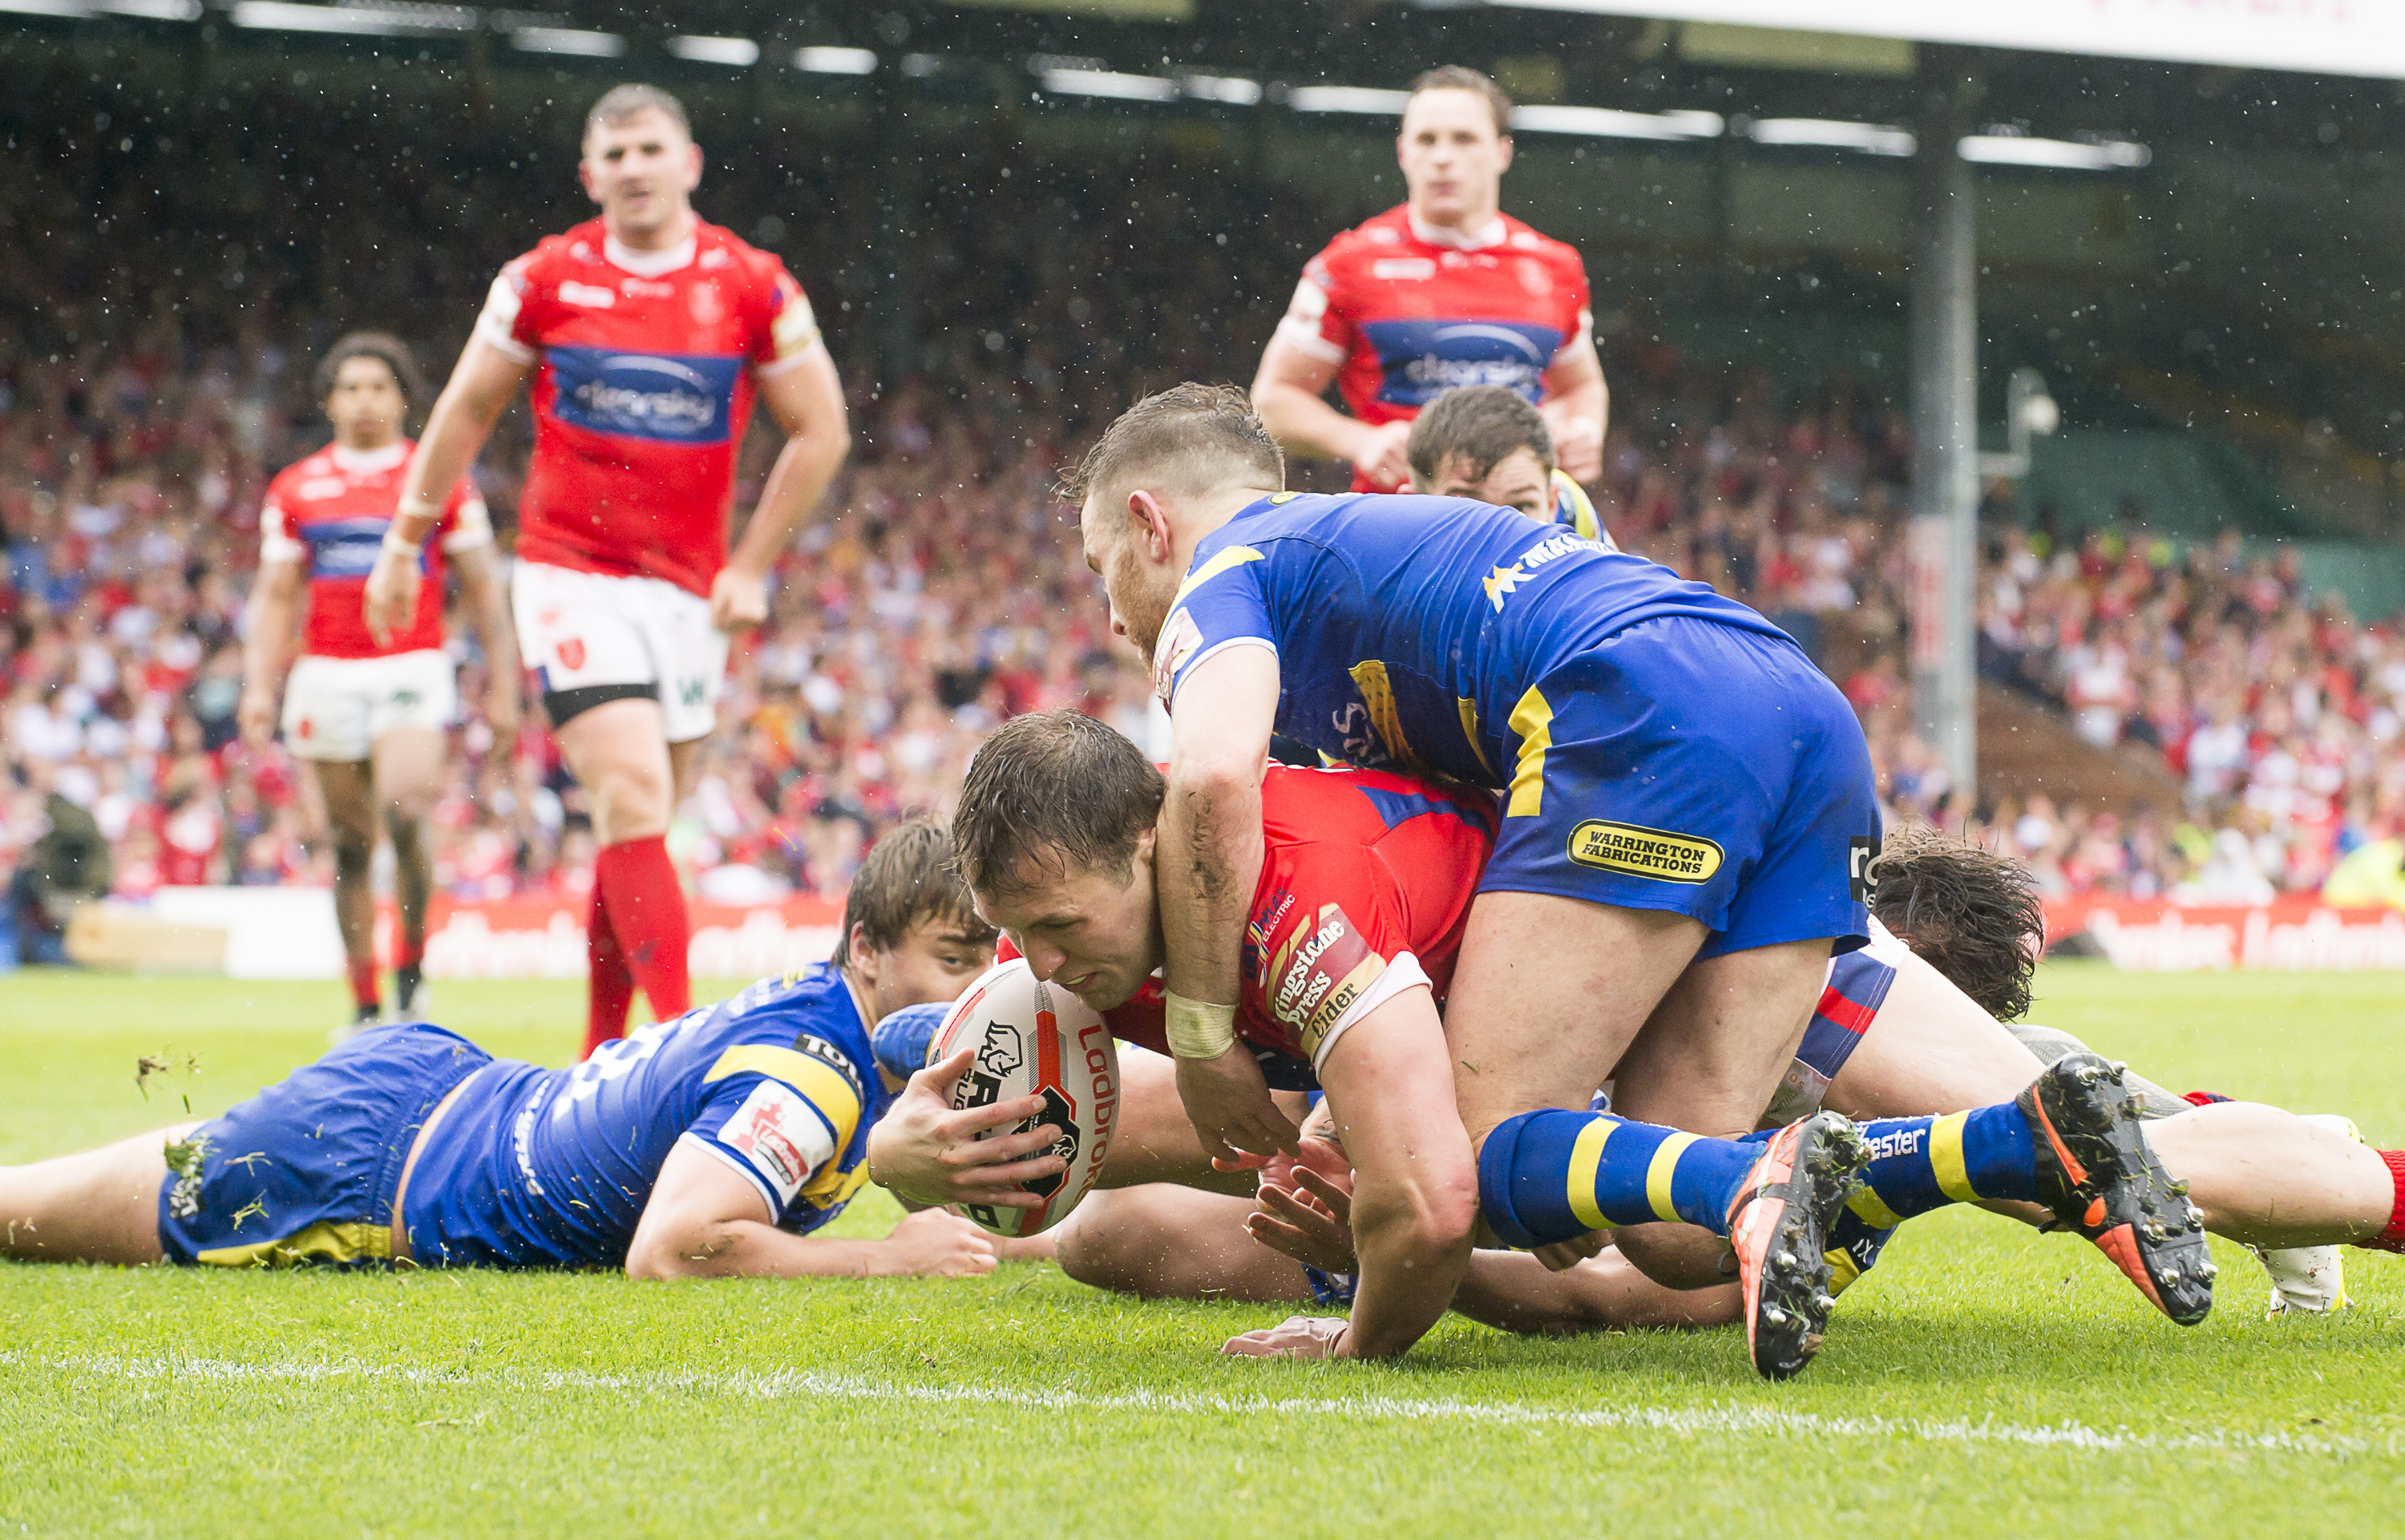 Picture by Allan McKenzie/SWpix.com - 01/08/2015 - Rugby League - Ladbrokes Challenge Cup Semi Final - Warrington Wolves v Hull Kingston Rovers - Headingley Carnegie Stadium, Leeds, England - Hull KR's Shaun Lunt powers over for the game-winning try against Warrington.